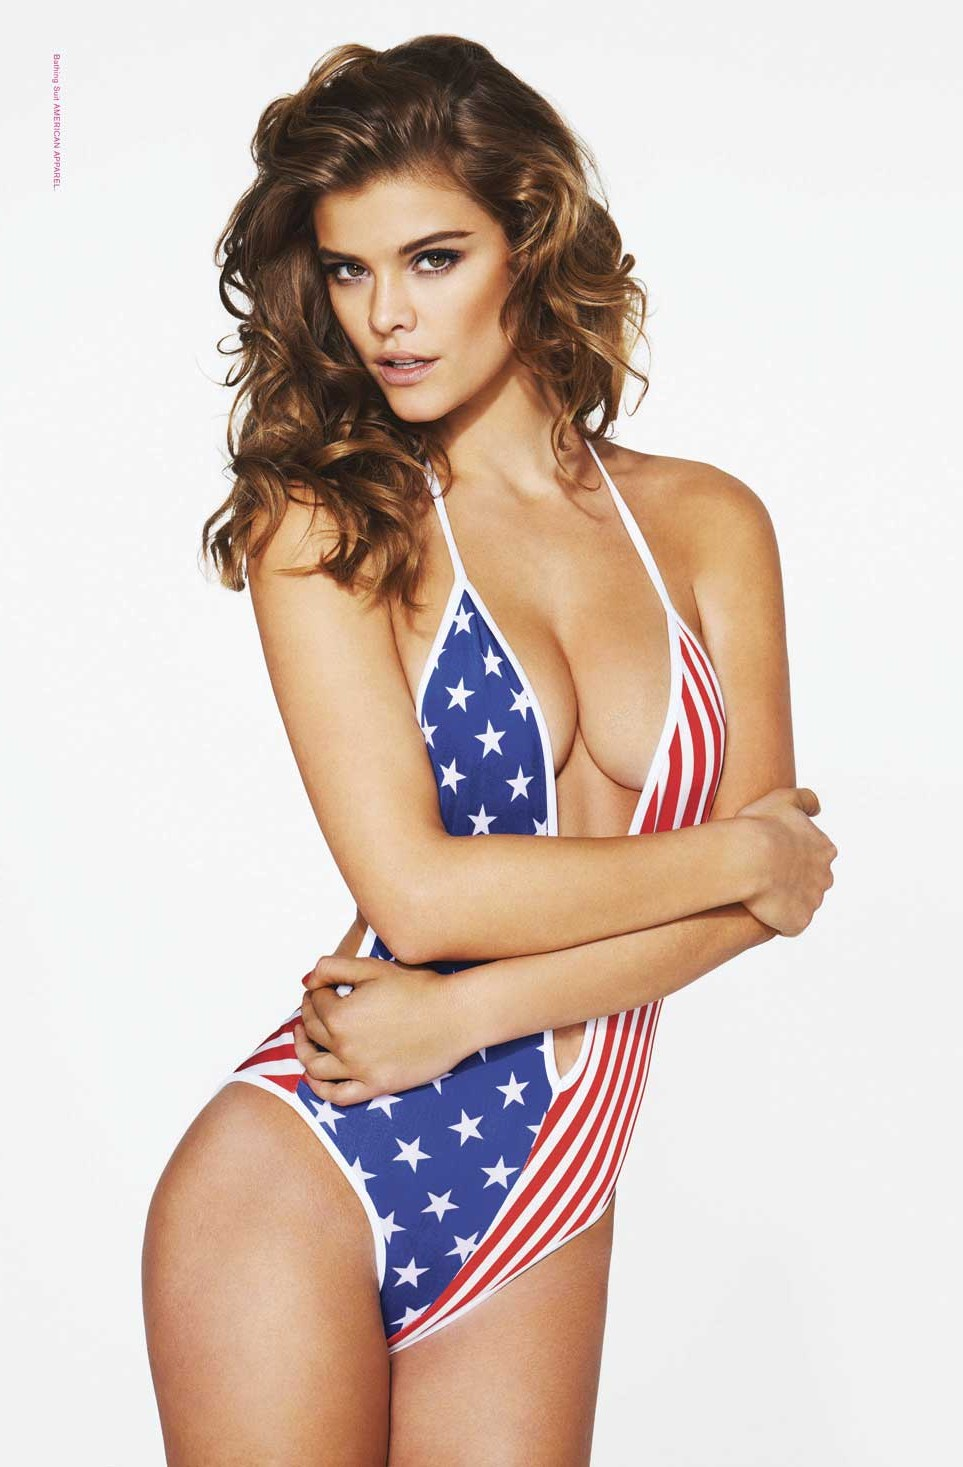 nina-agdal-galore-magazine-issue-3-the-bombshell-issue-05